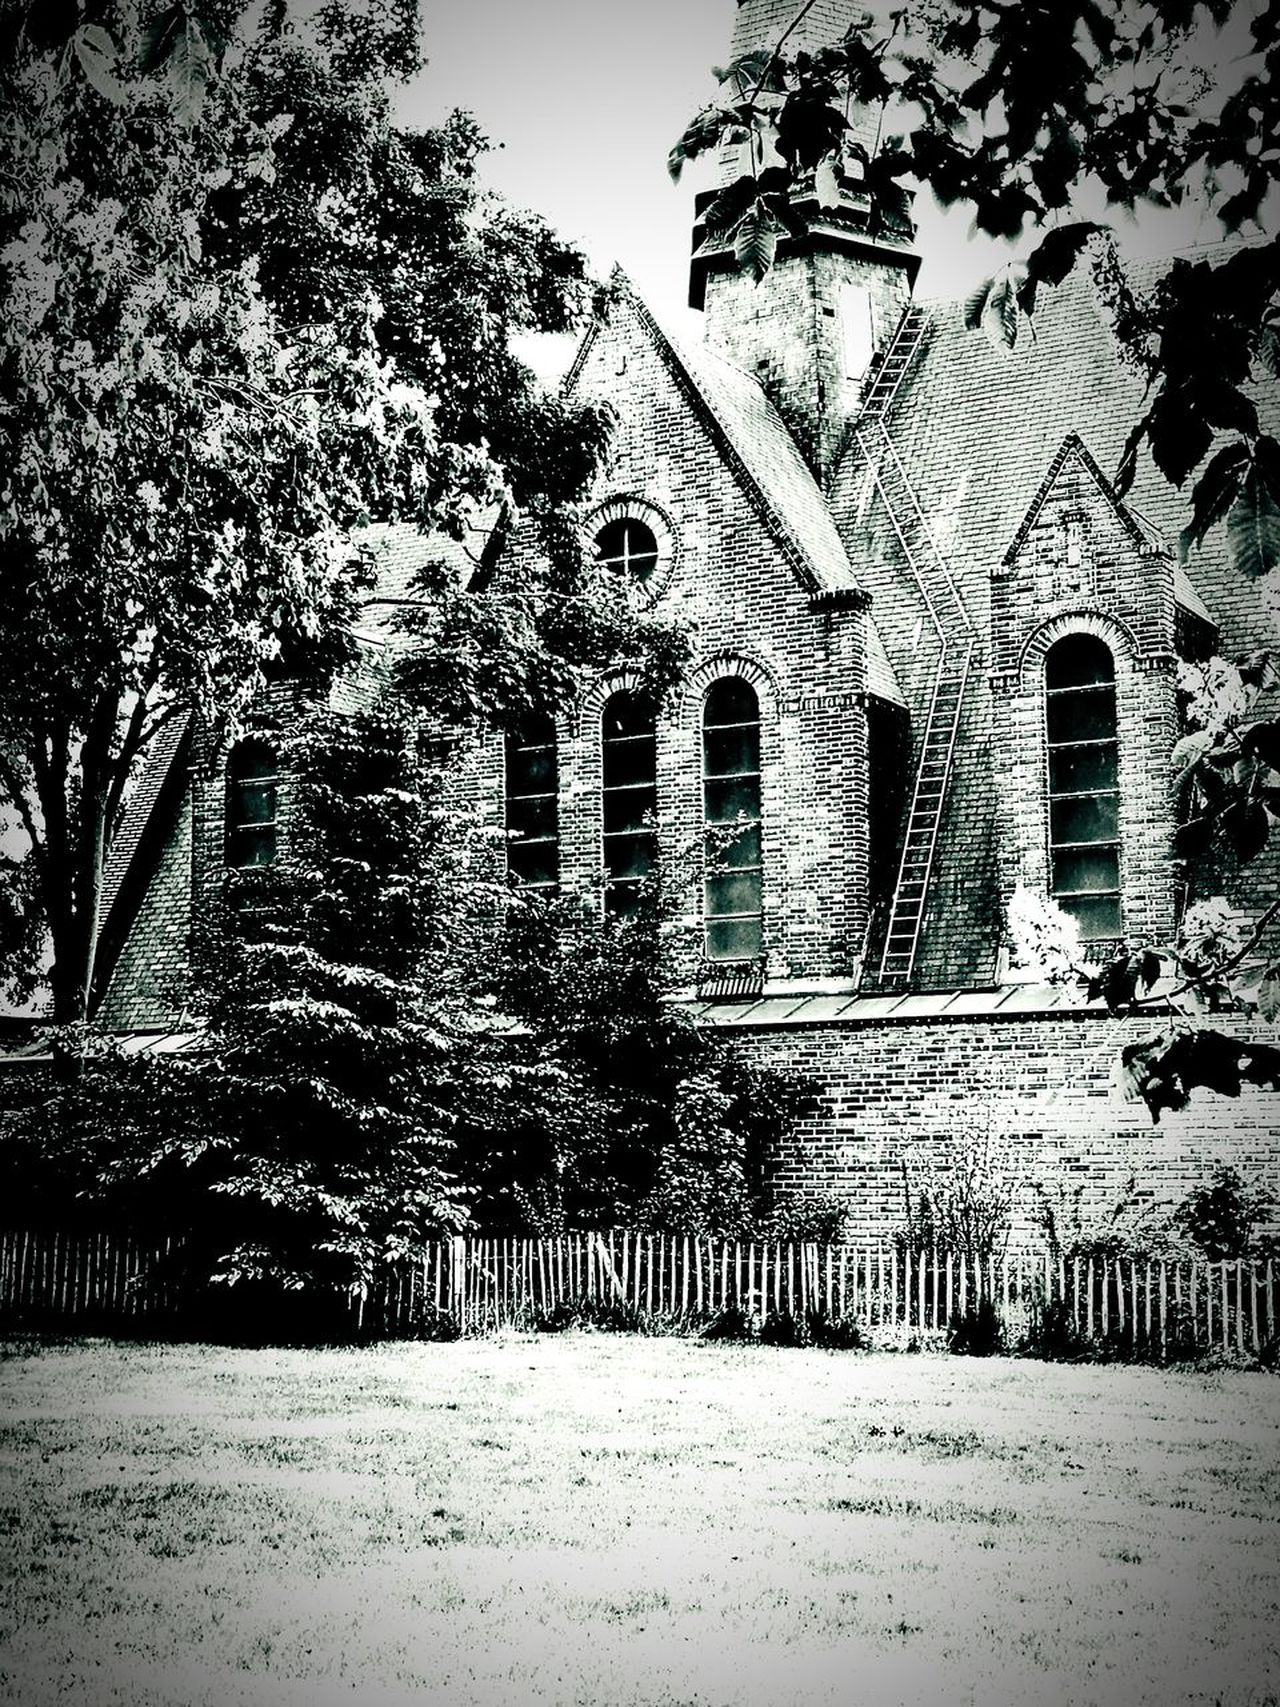 Architecture Religion Outdoors Built Structure Church Architecture No People B&w Photo B&WPhoto B&W Collection Blackandwhite Photography Monochrome Collection Monochrome Photograhy France🇫🇷 HuaweiP9Photography